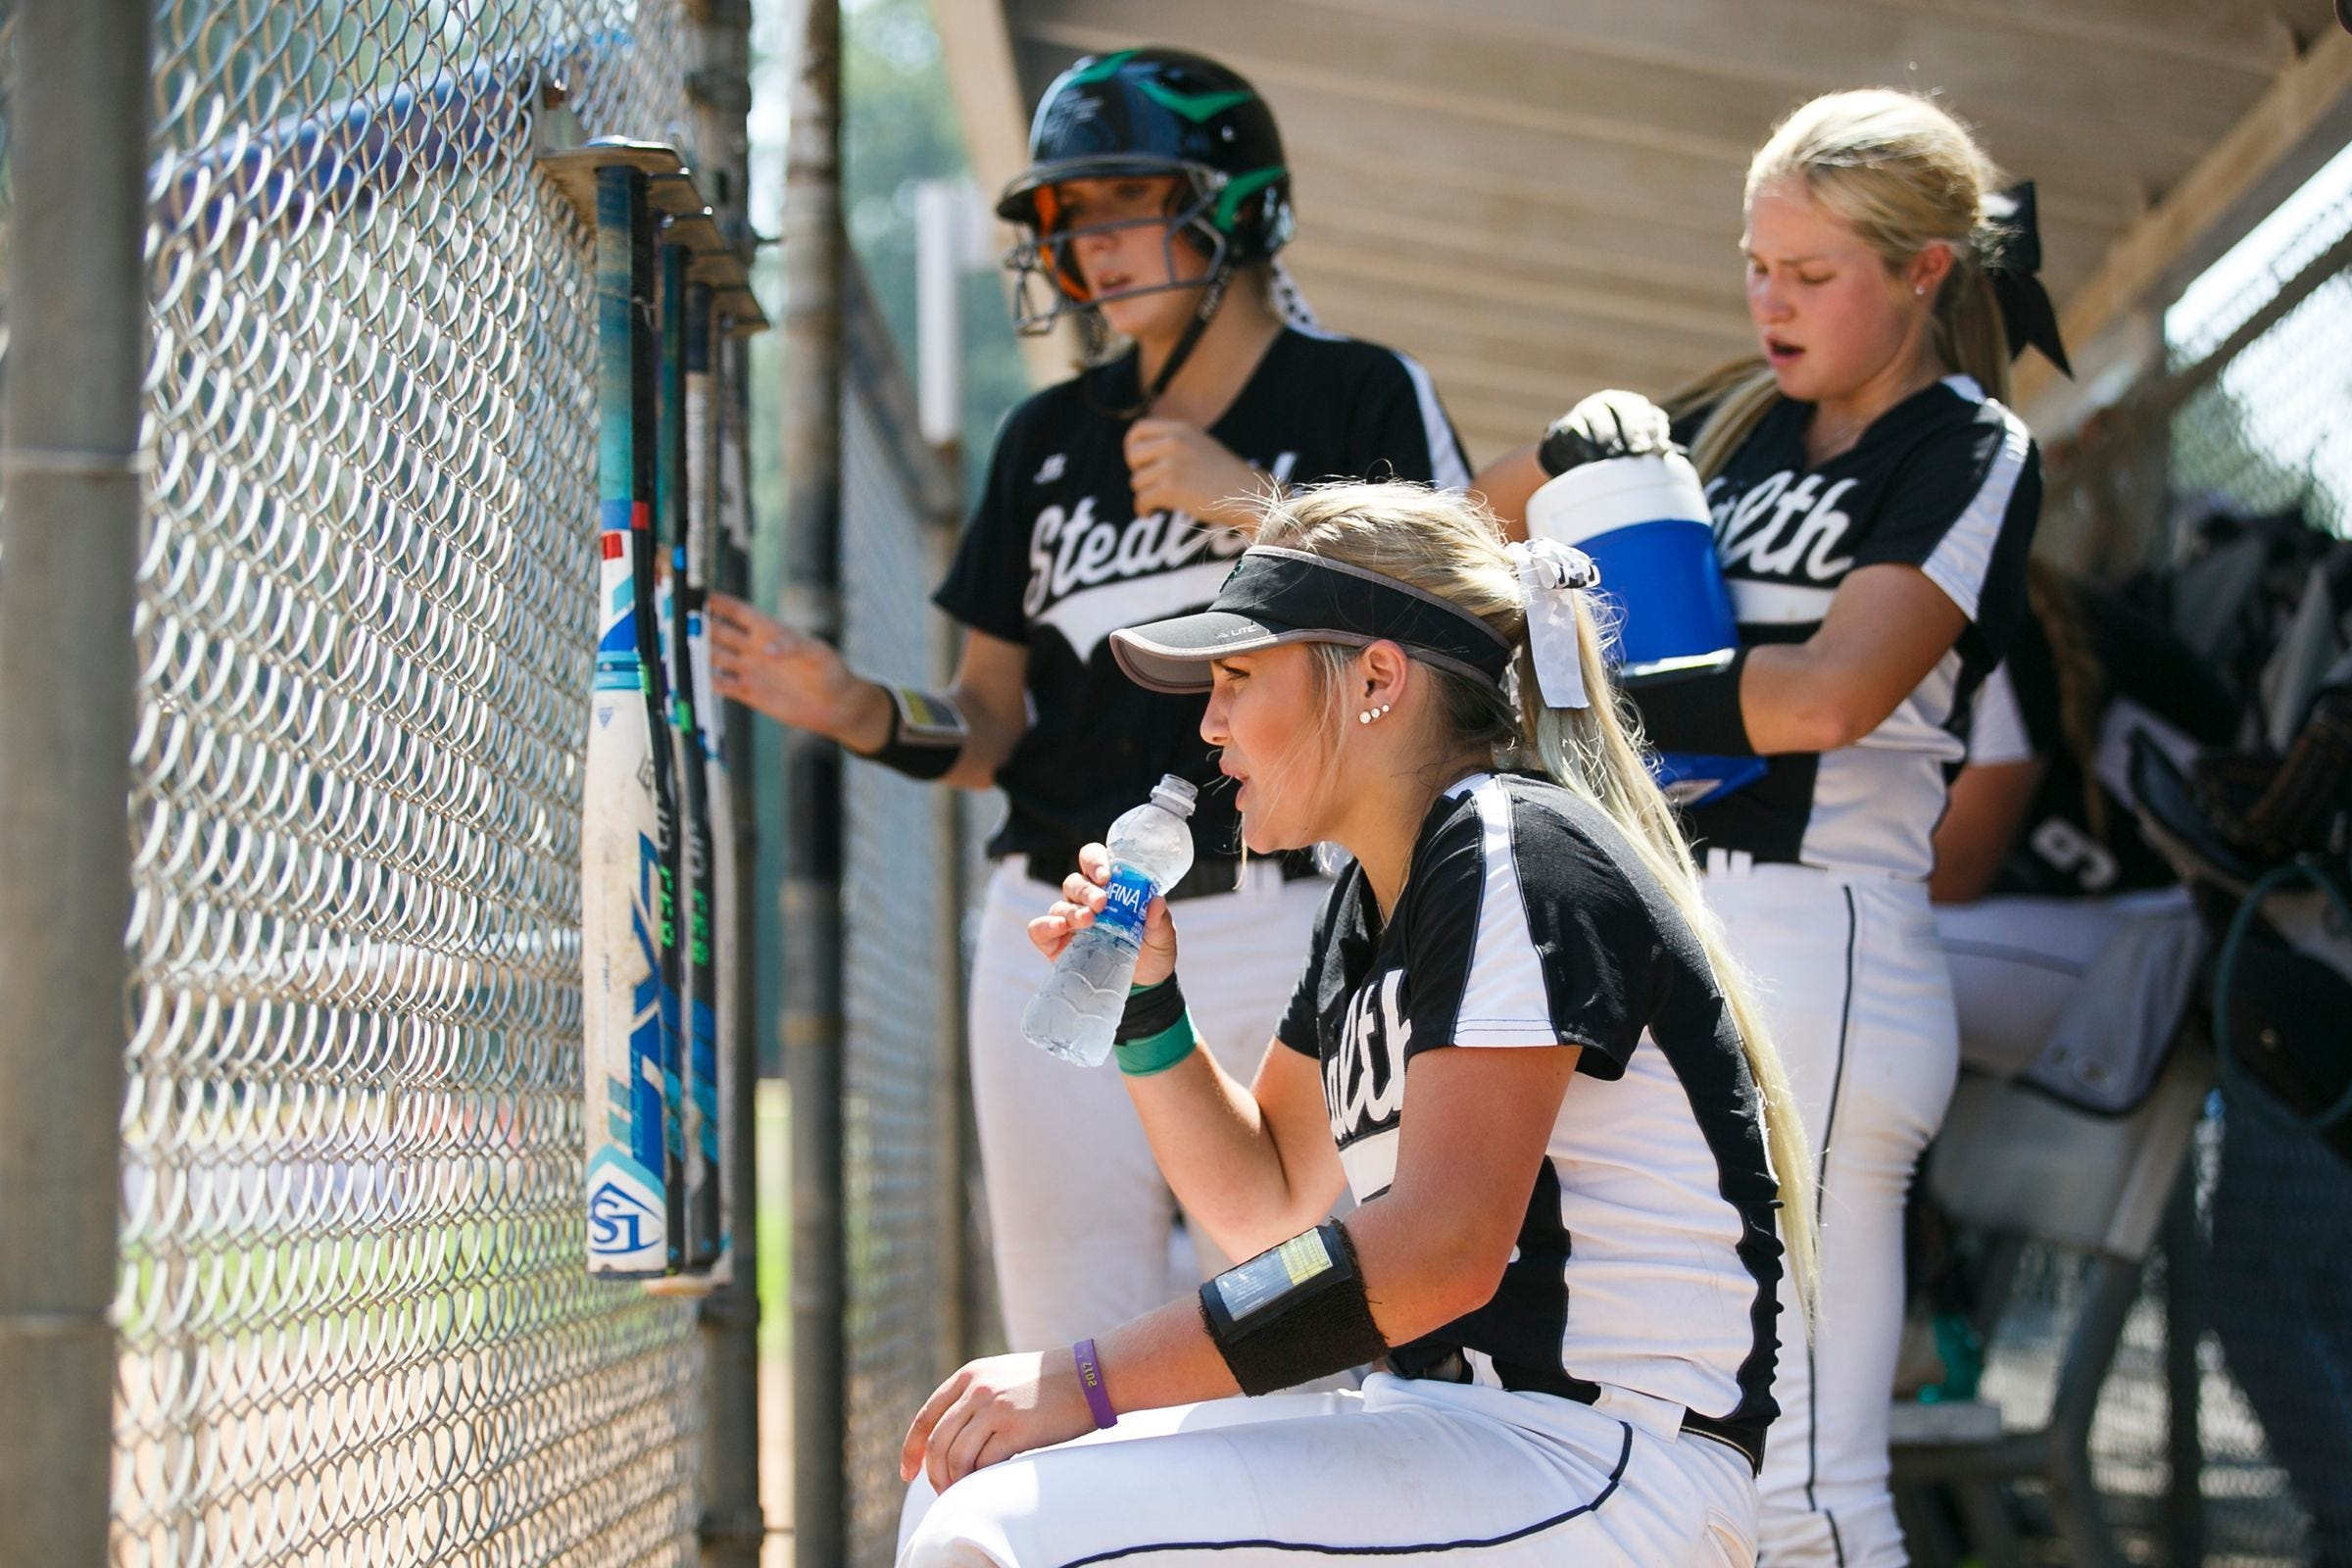 Salem expecting $1 million from USA girls' softball tournament